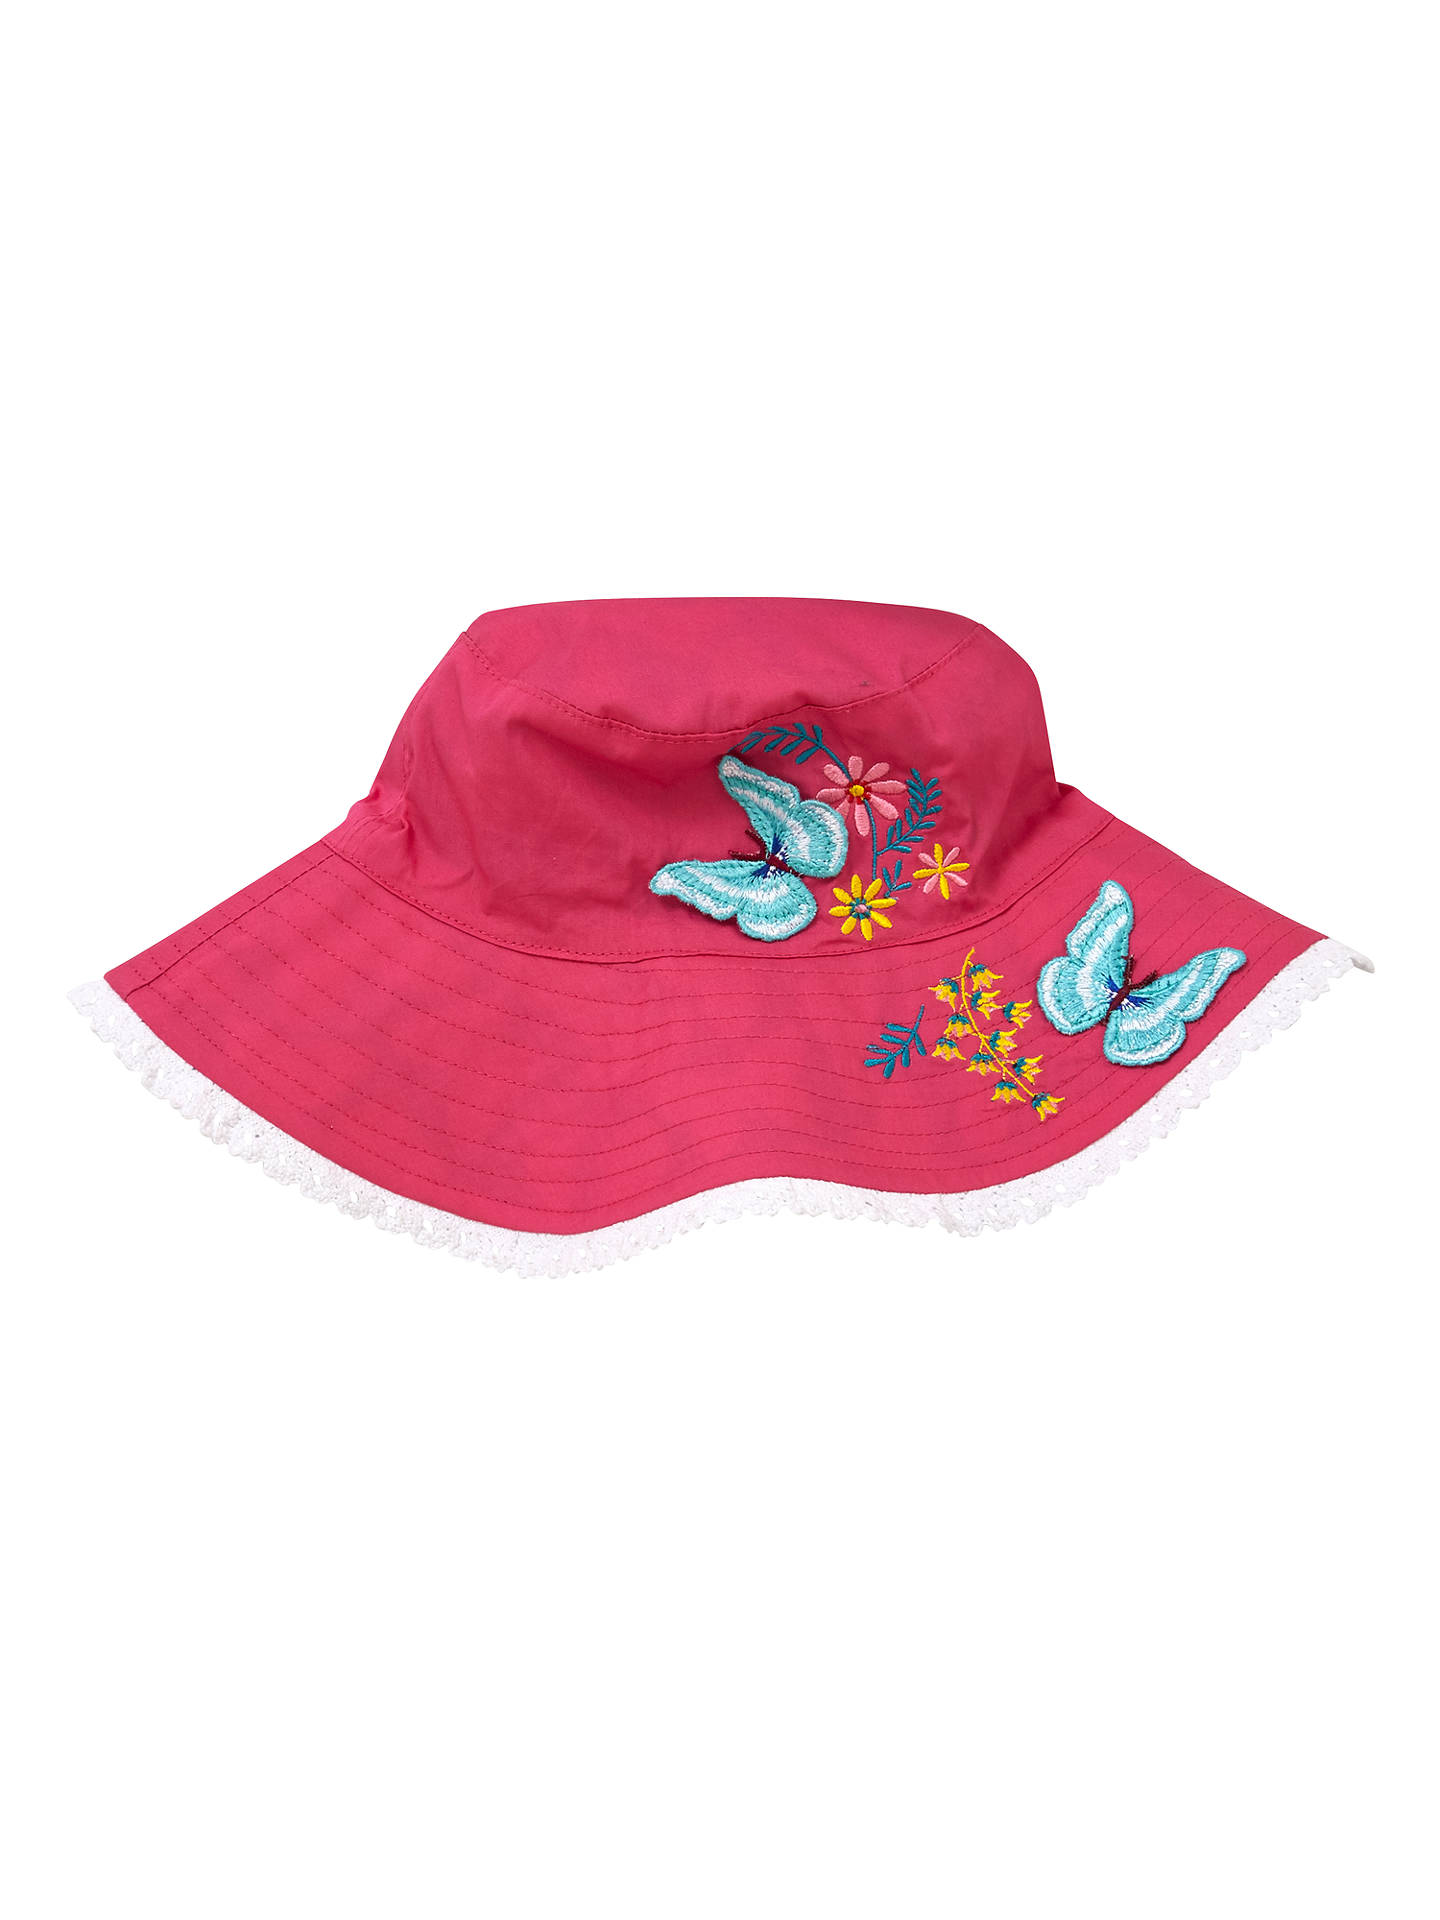 2656dd397c999 Buy John Lewis Children s Reversible Butterfly Bucket Hat